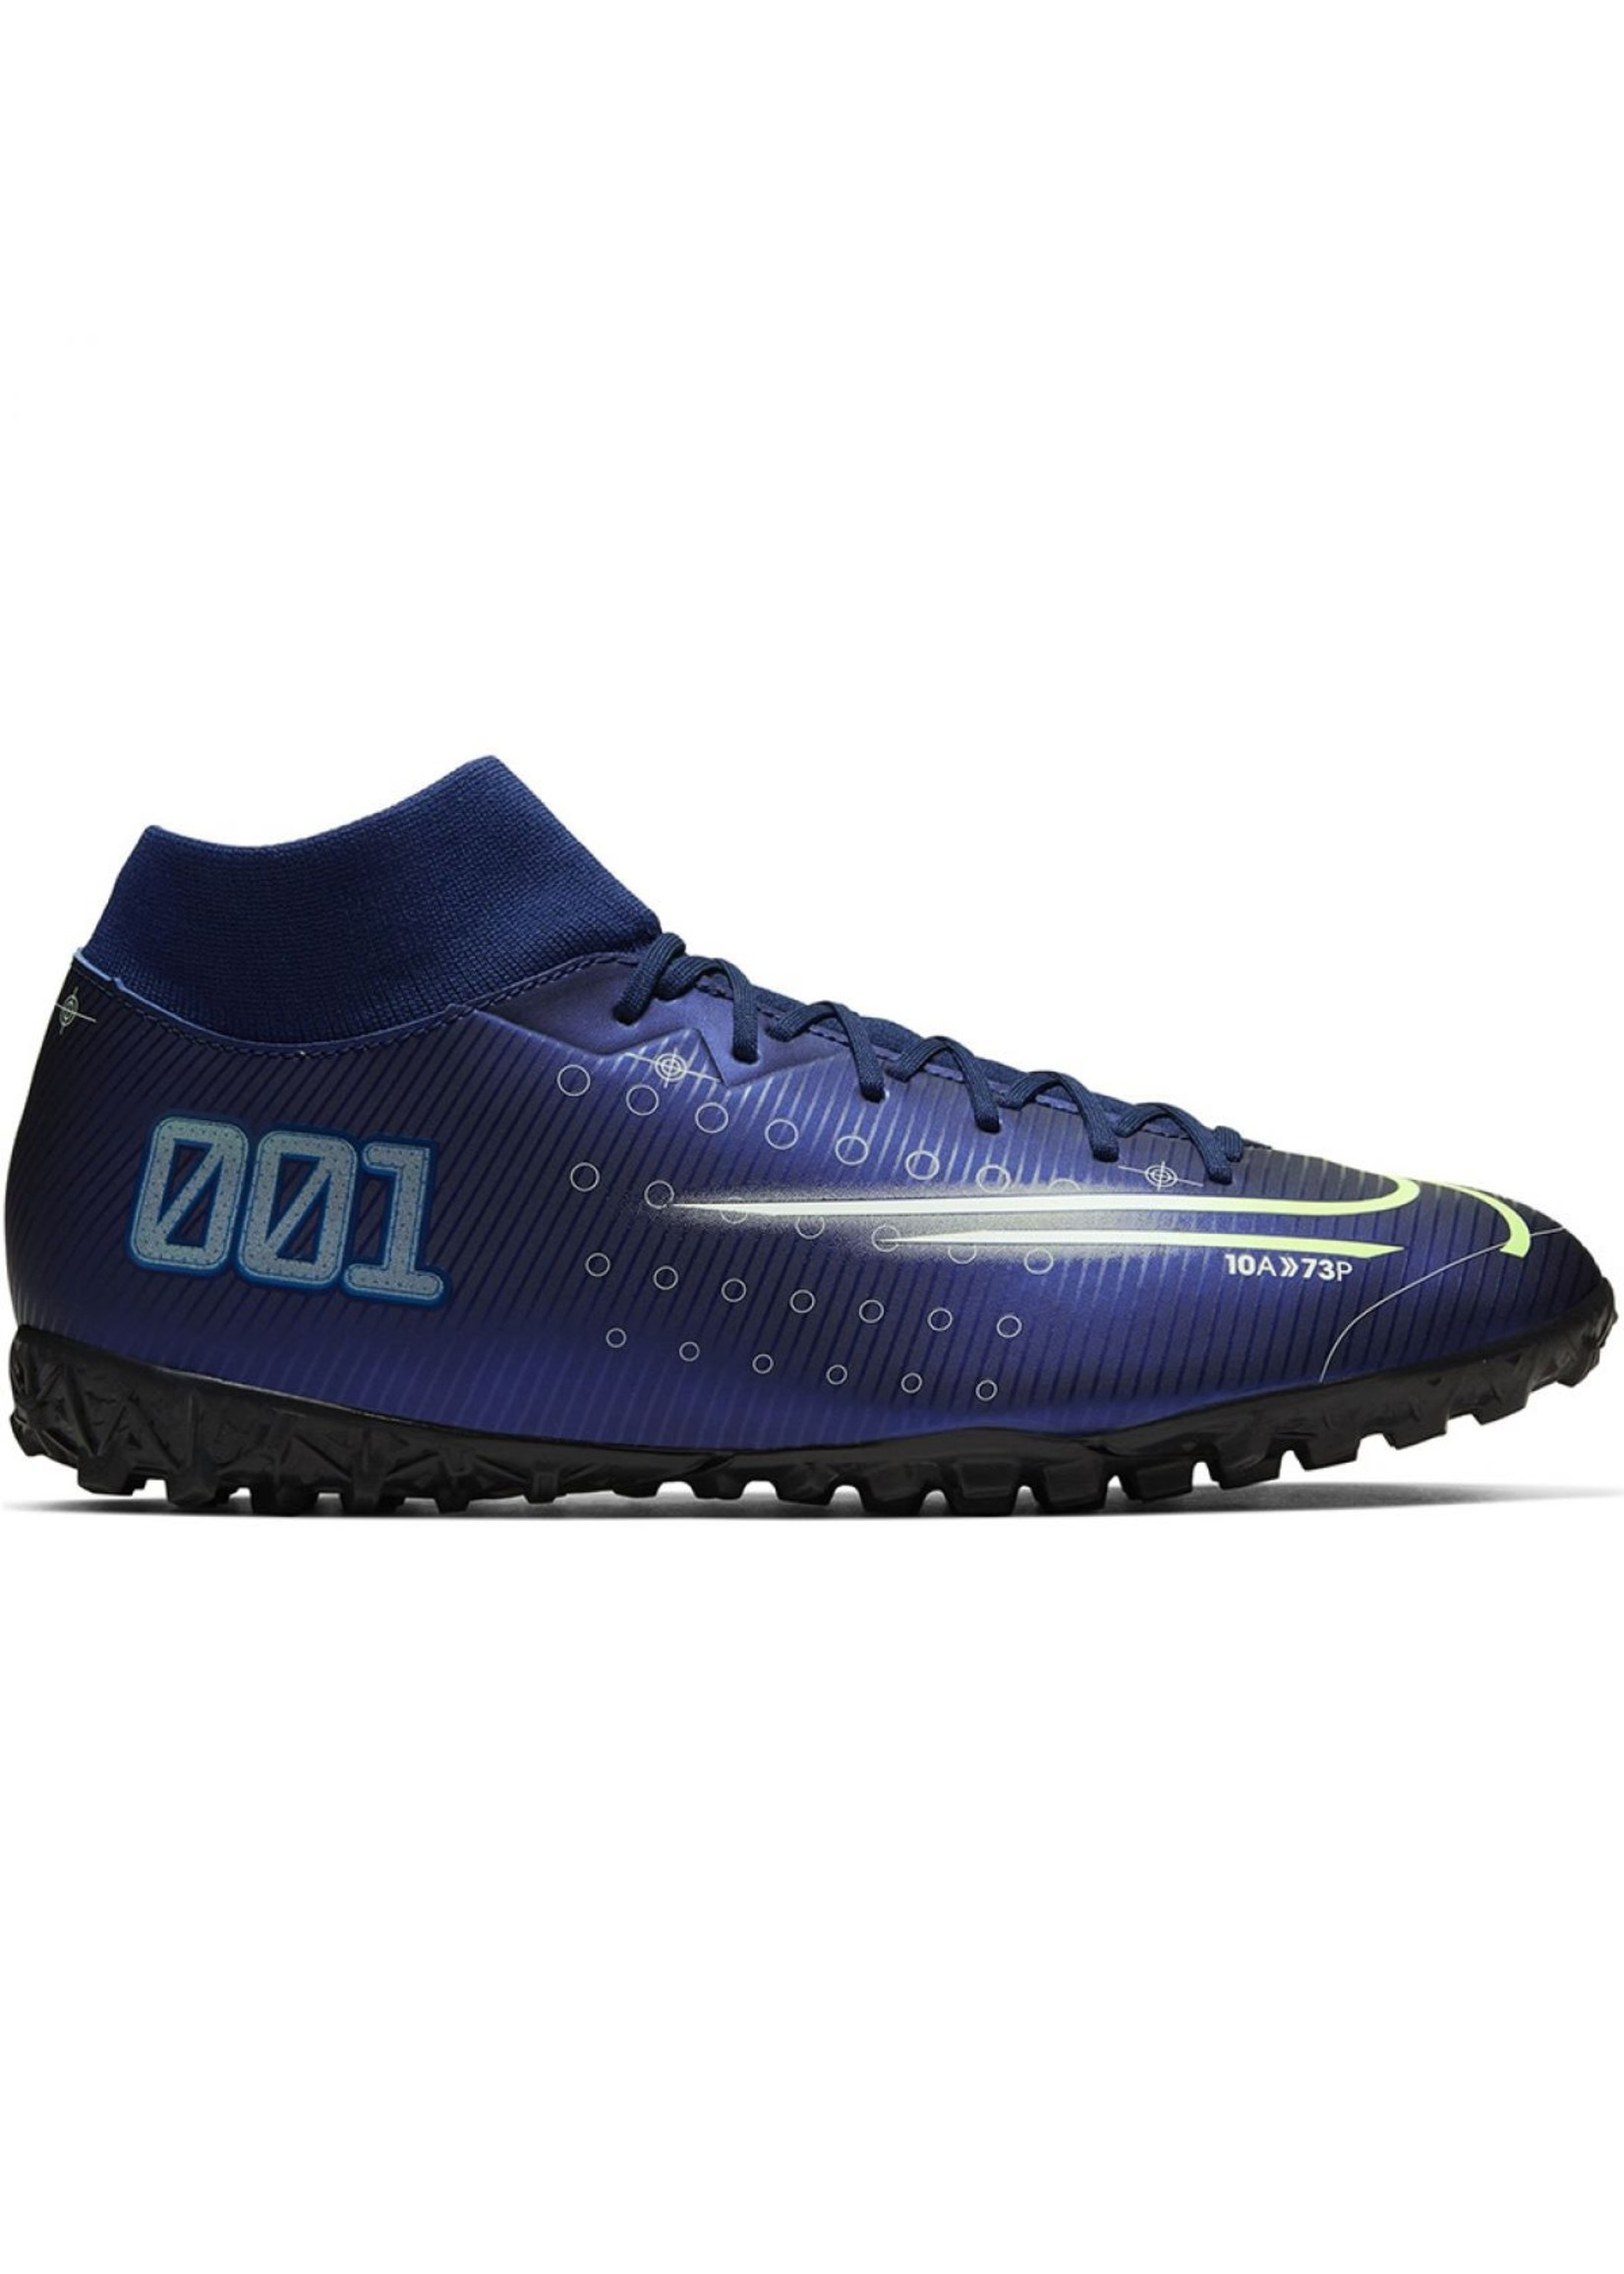 Nike Superfly 7 Academy MDS TF